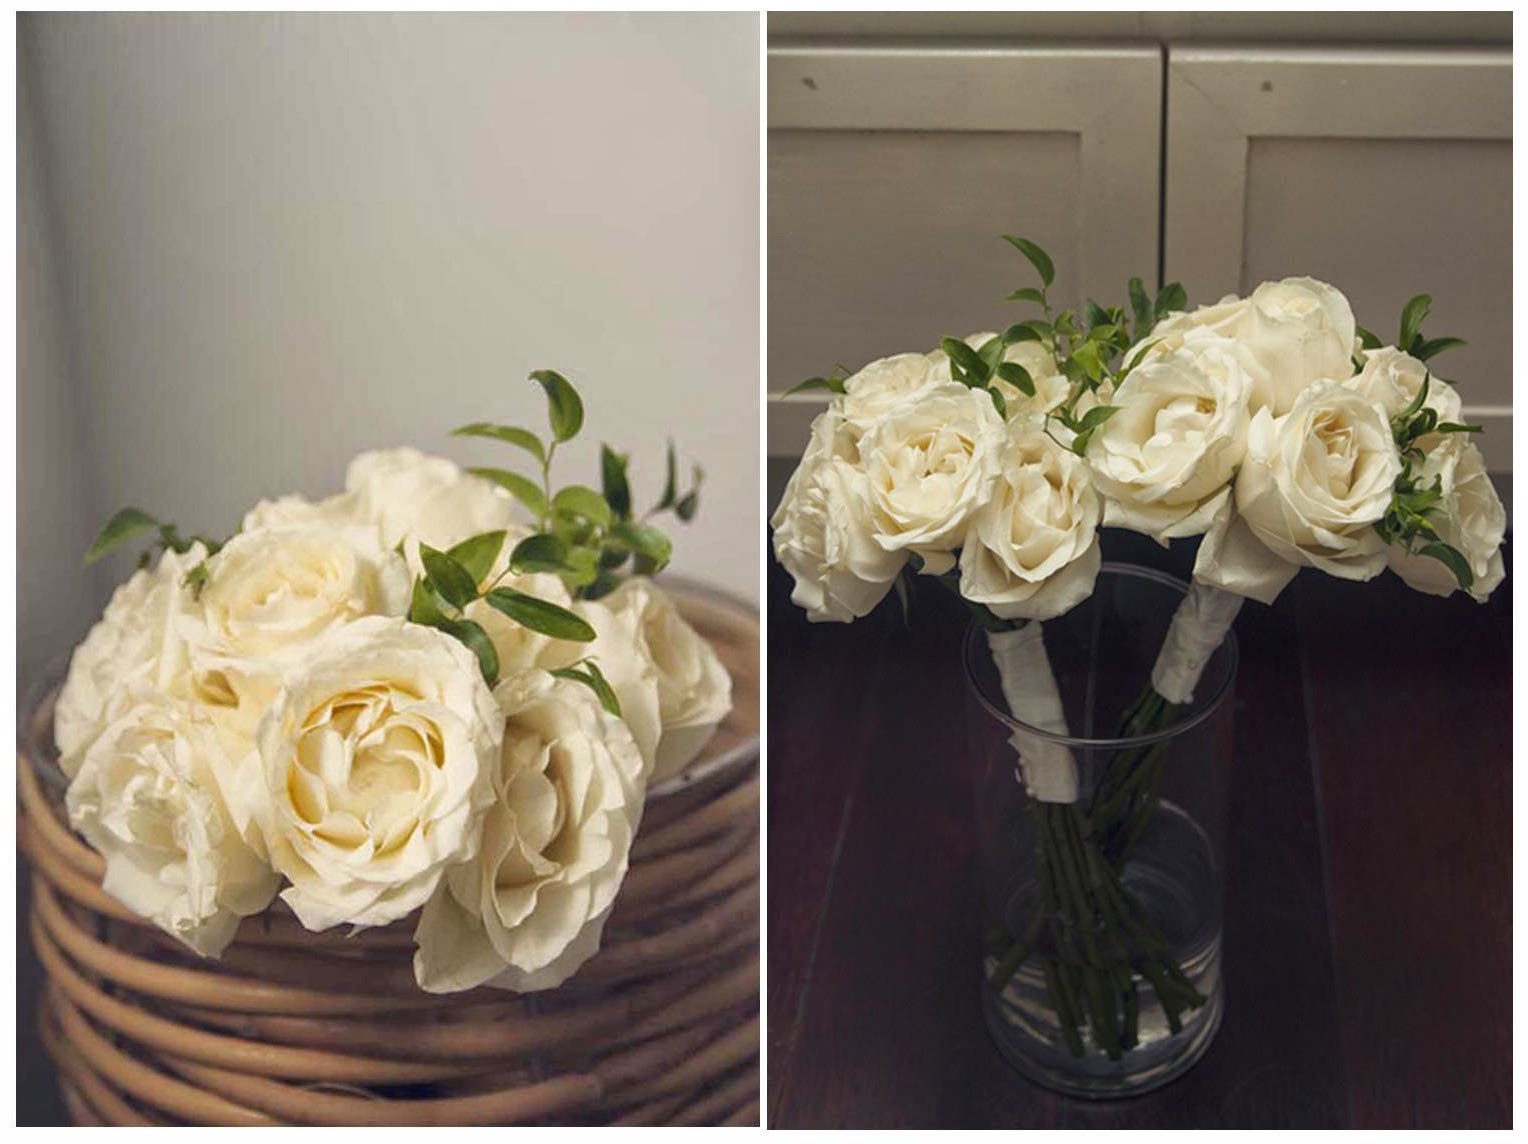 white roses and smilax leaves